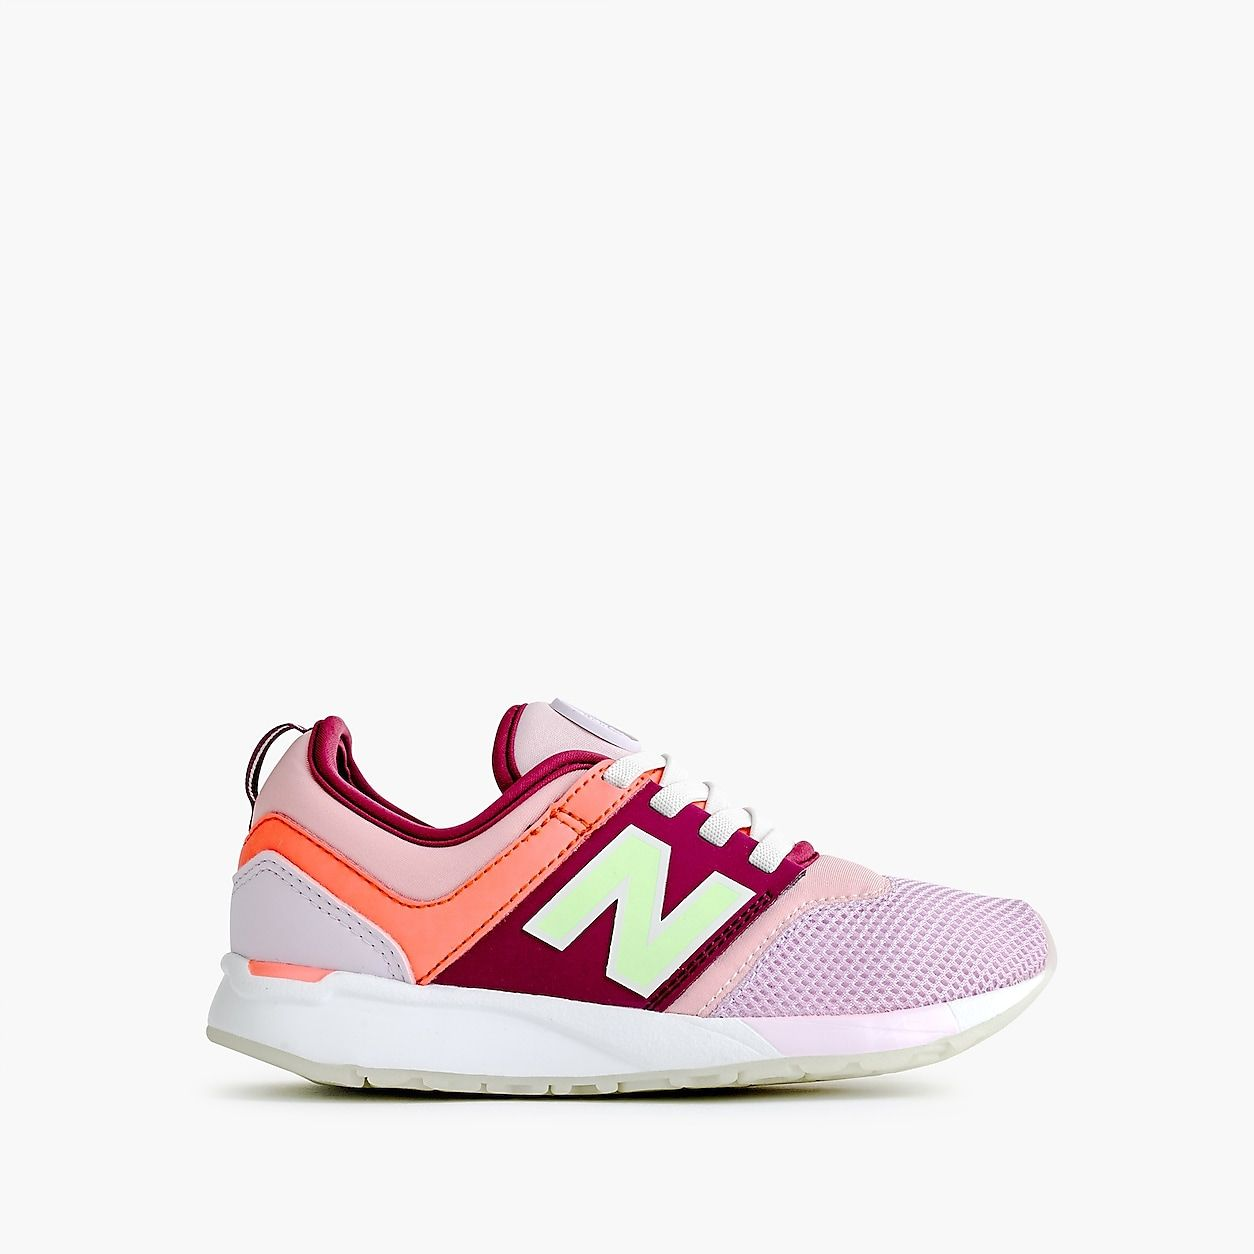 Kid shoes, Girls shoes, Girls sneakers